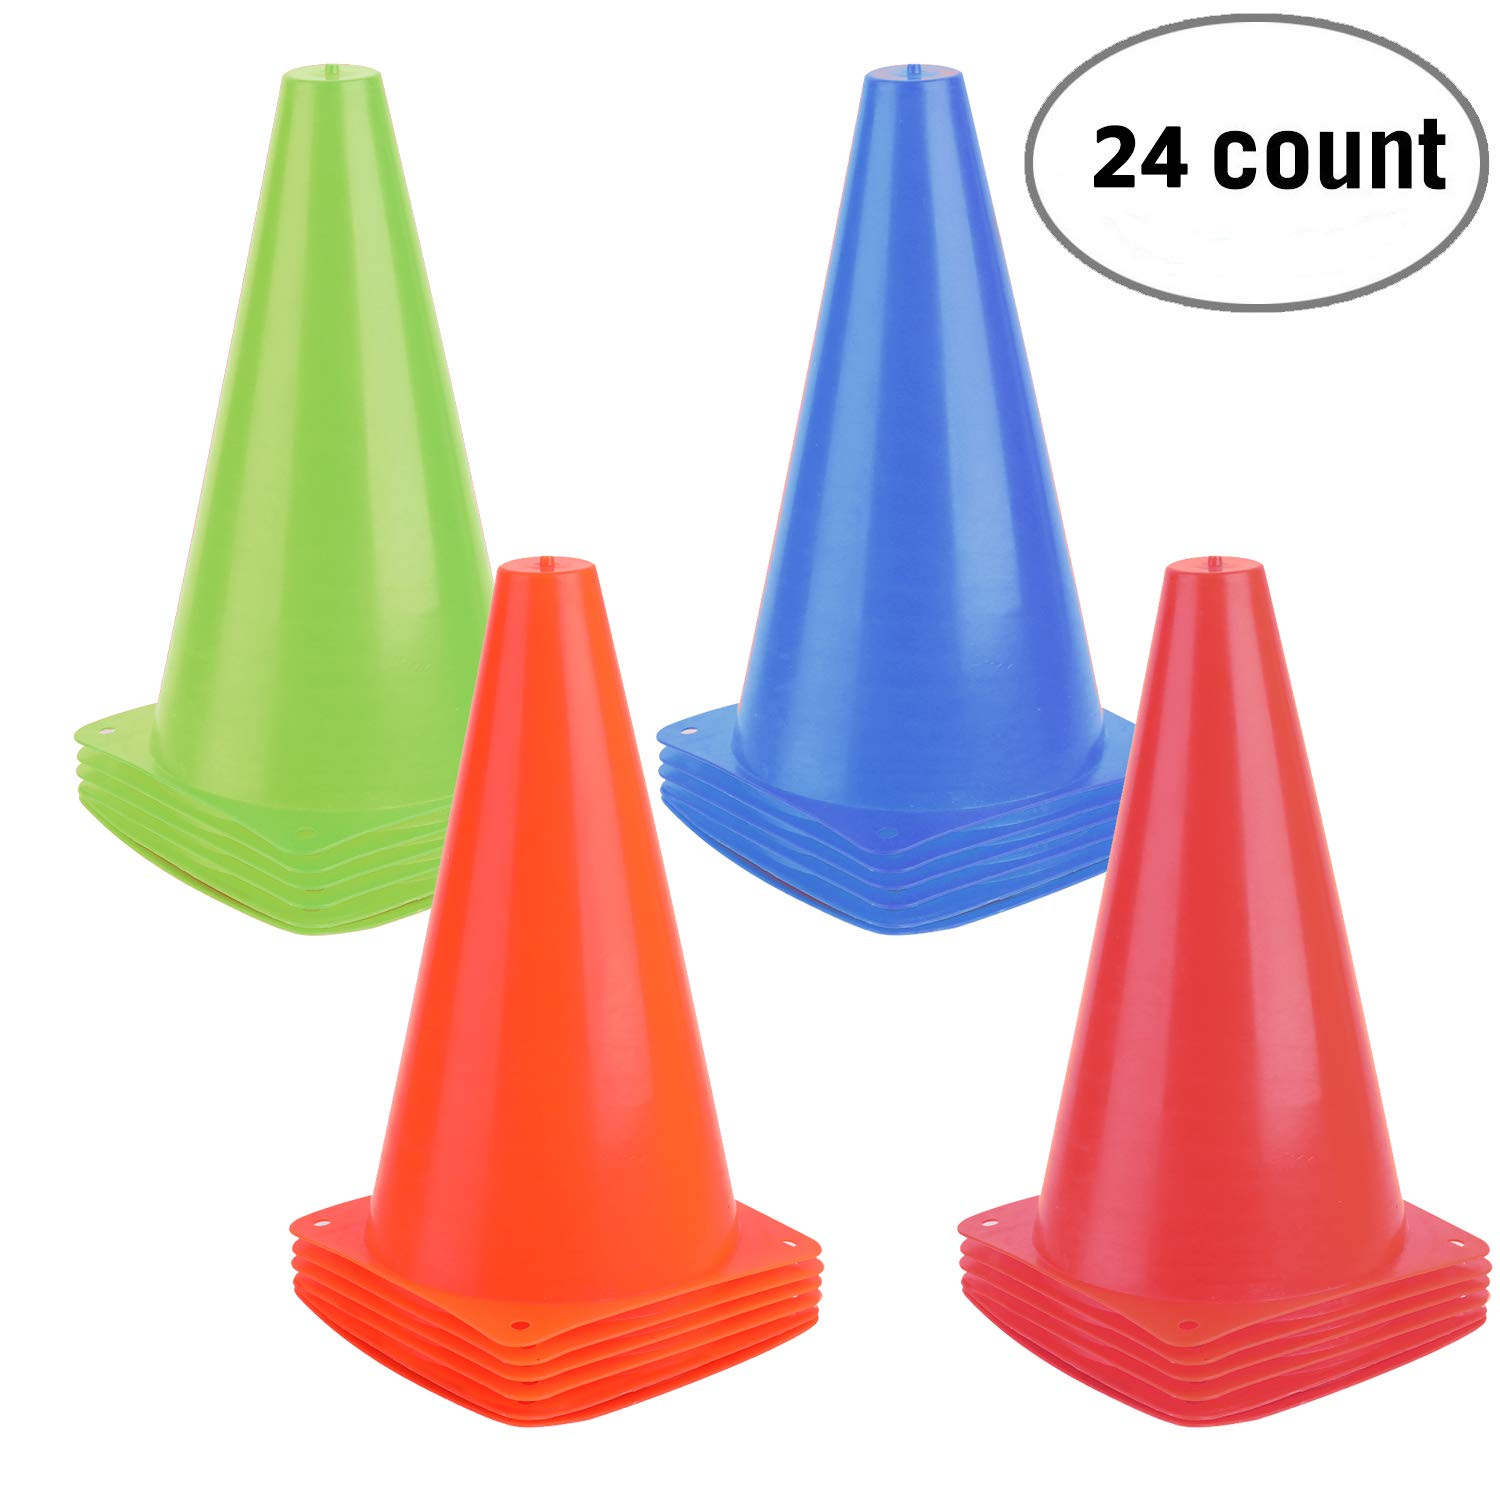 9 Inch Plastic Training Traffic Cones, Sport Cones, Agility Field Marker Cones for Soccer Basketball Football Drills Training, Outdoor Activity or Events - (Set of 10, 15 or 24, 4 Colors)